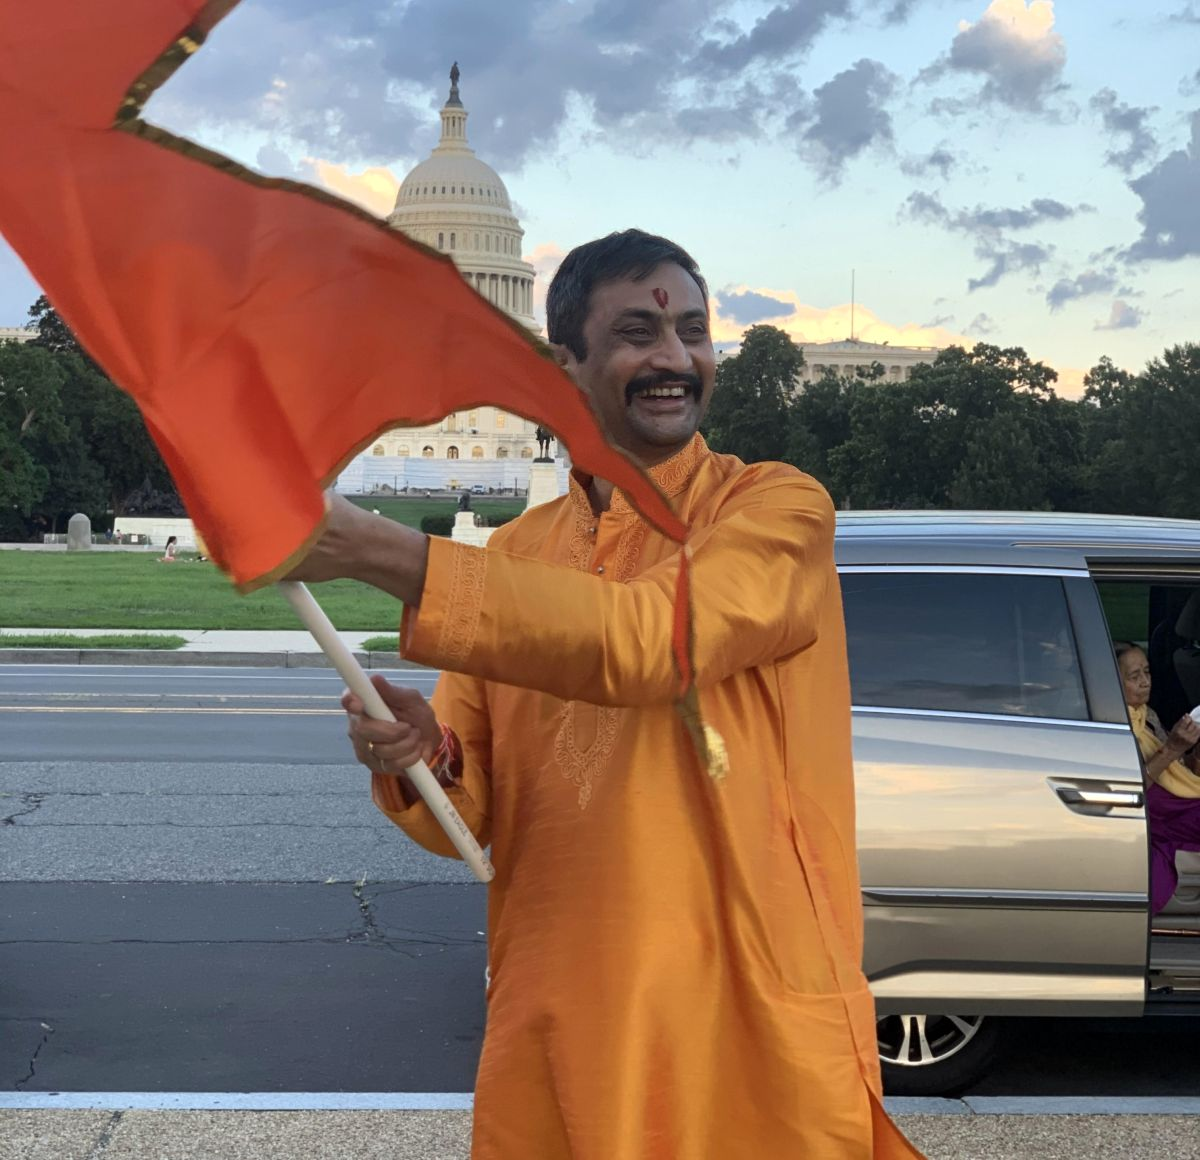 US poll: '2 mn Hindus key voting bloc in swing states'